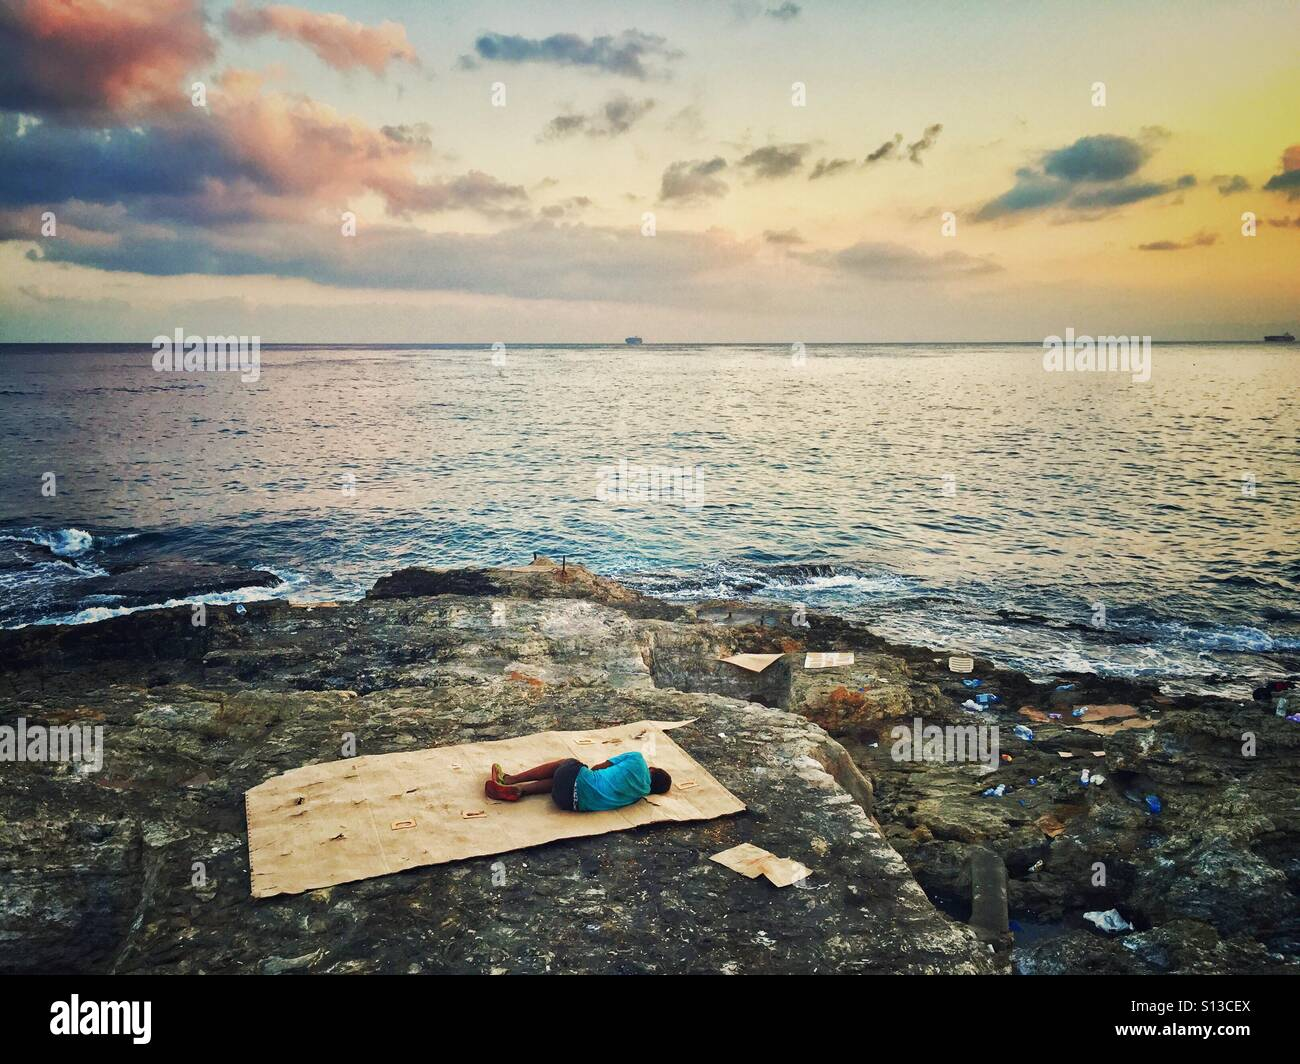 Syrian refugee child sleeping on the seashore Beirut Lebanon - Stock Image